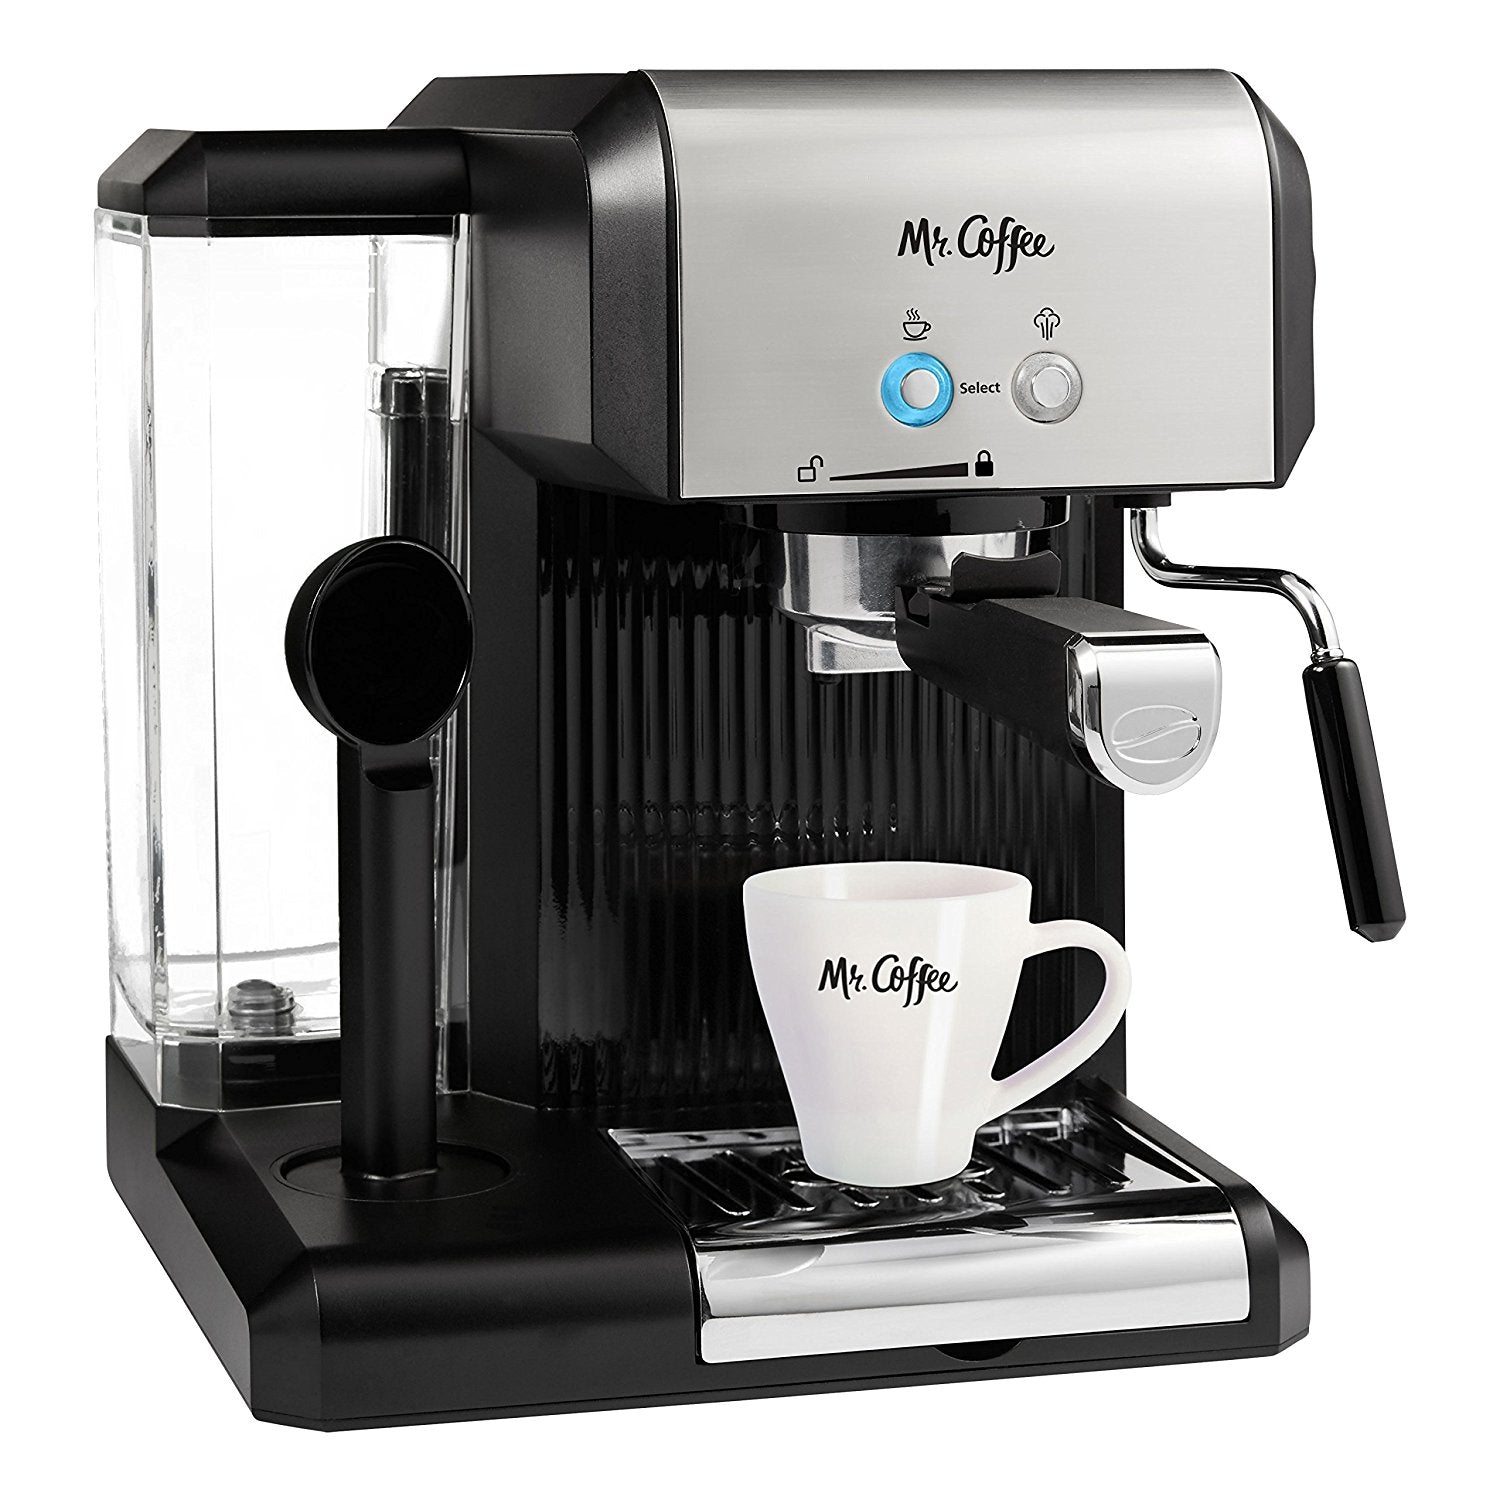 Espresso Machine | Why We Love Ours